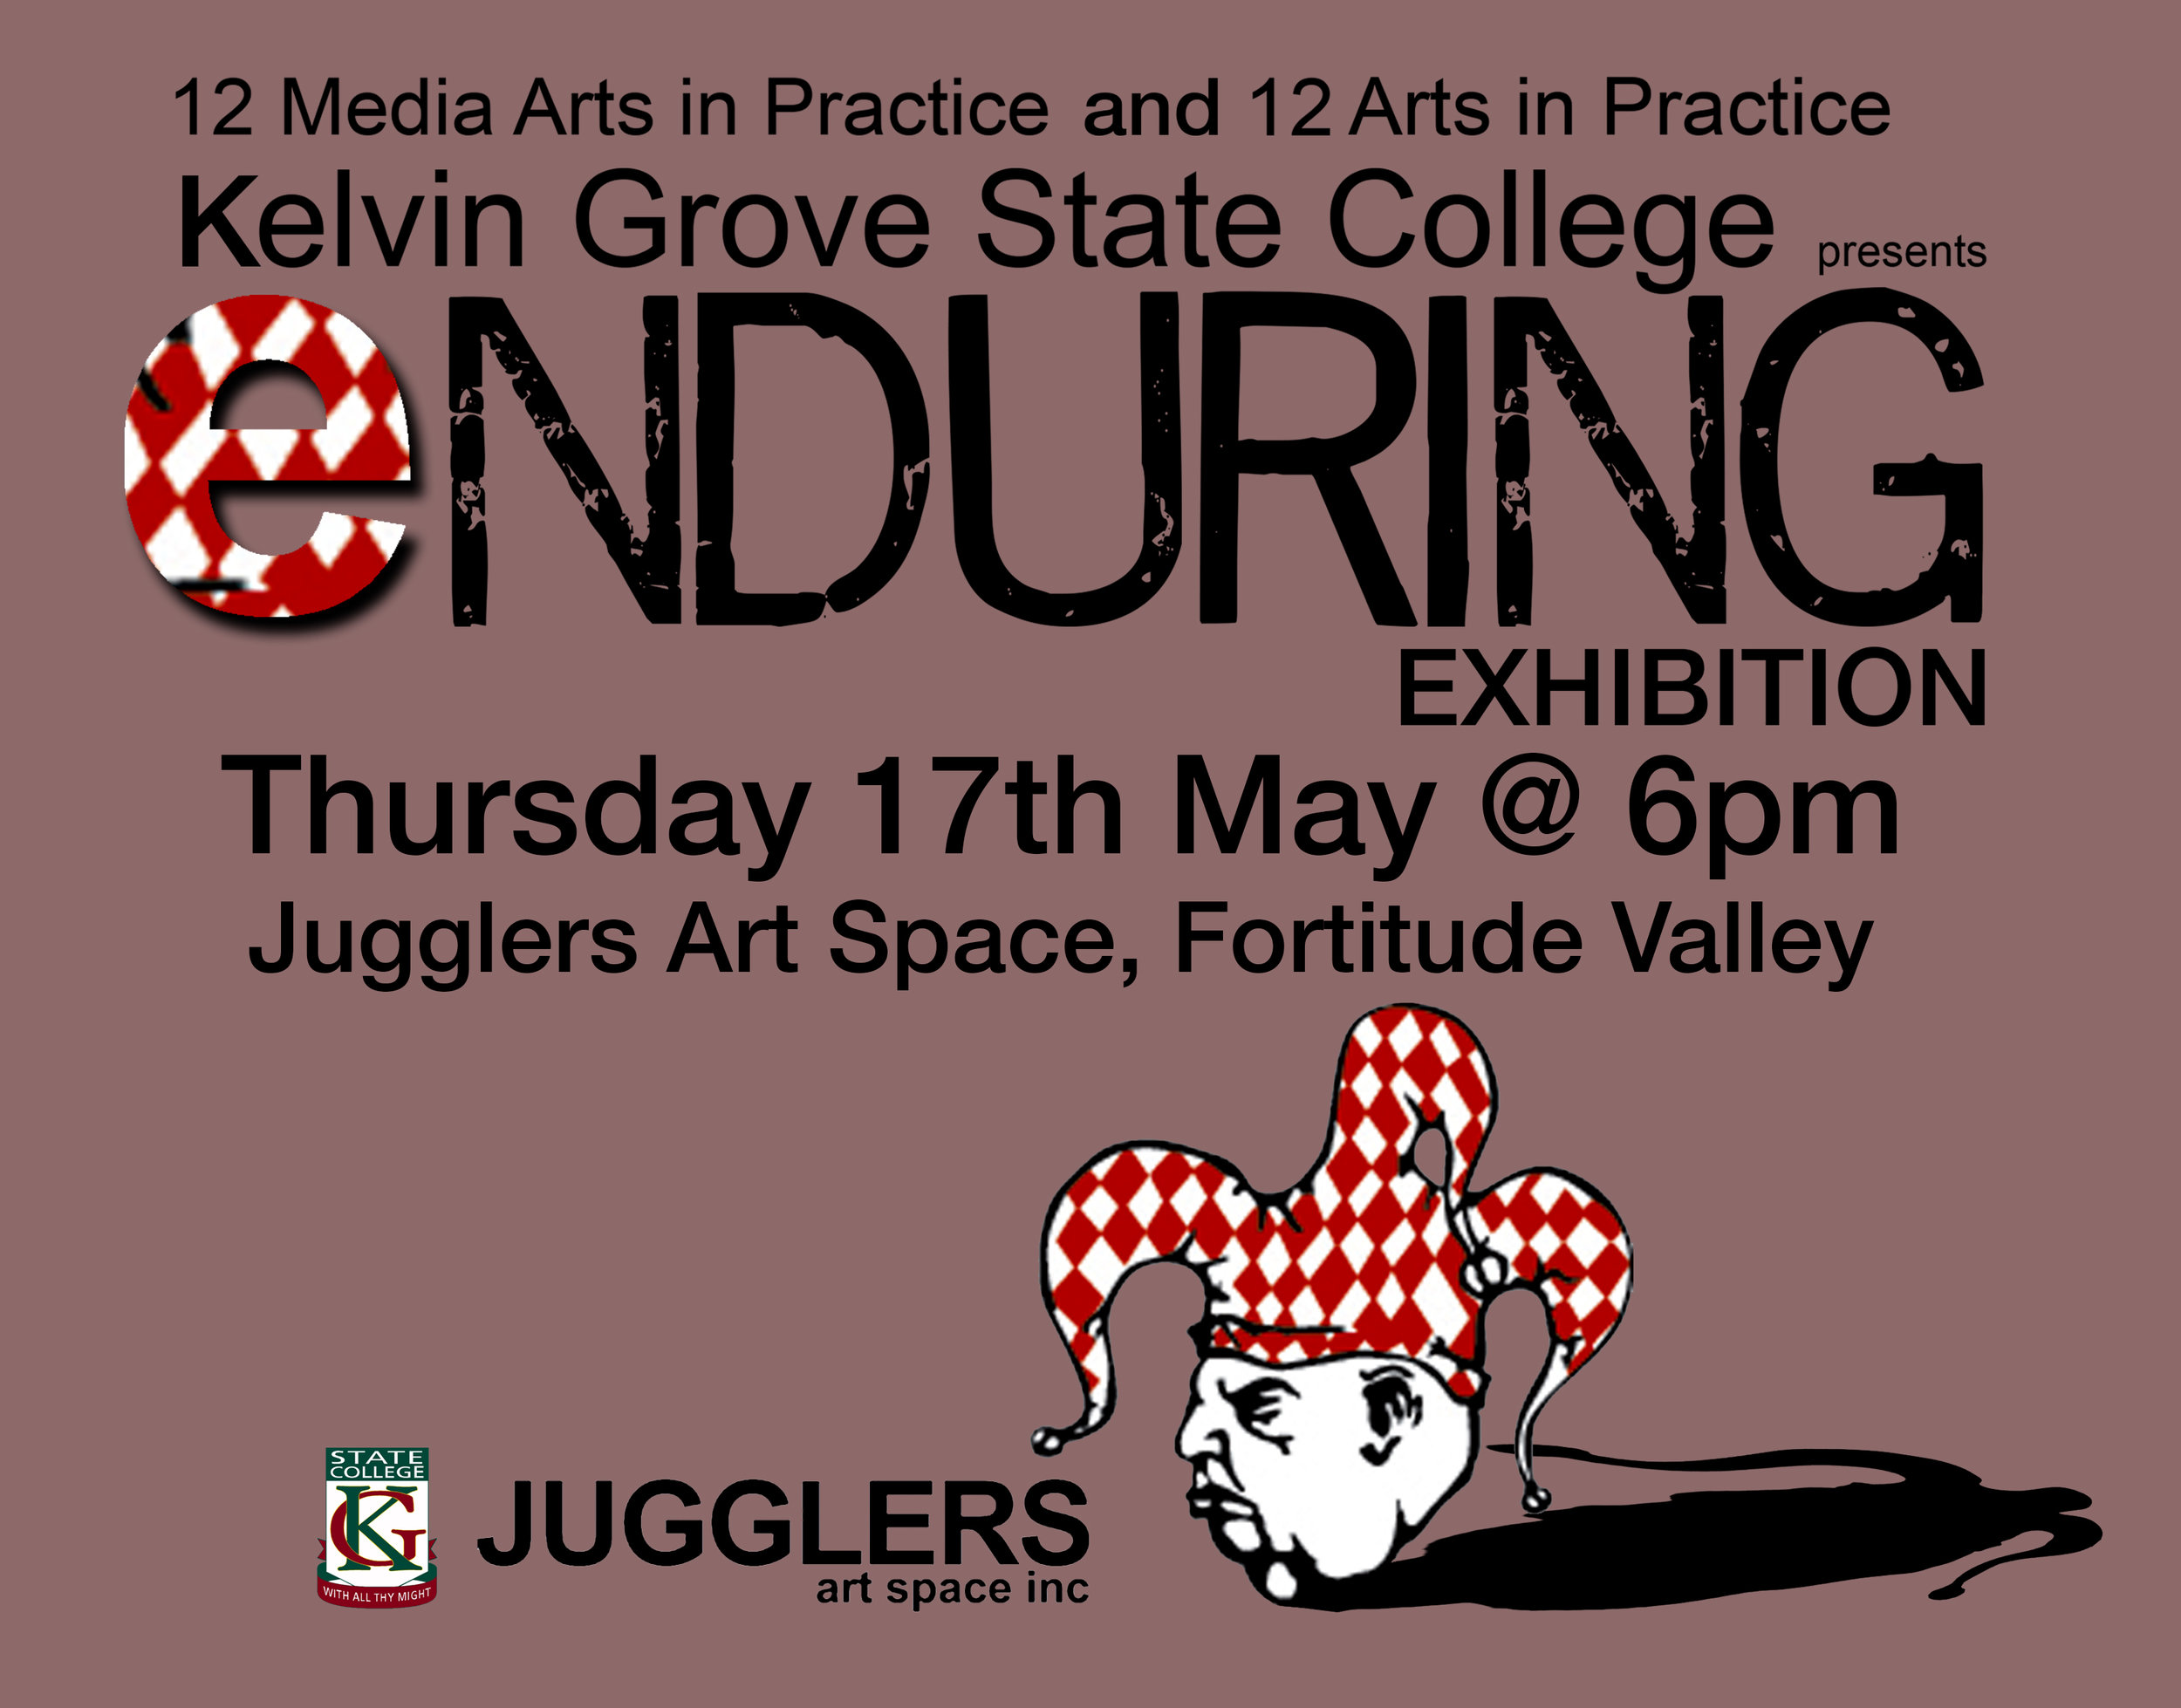 Enduring Jugglers Exhibition Flyer.jpg